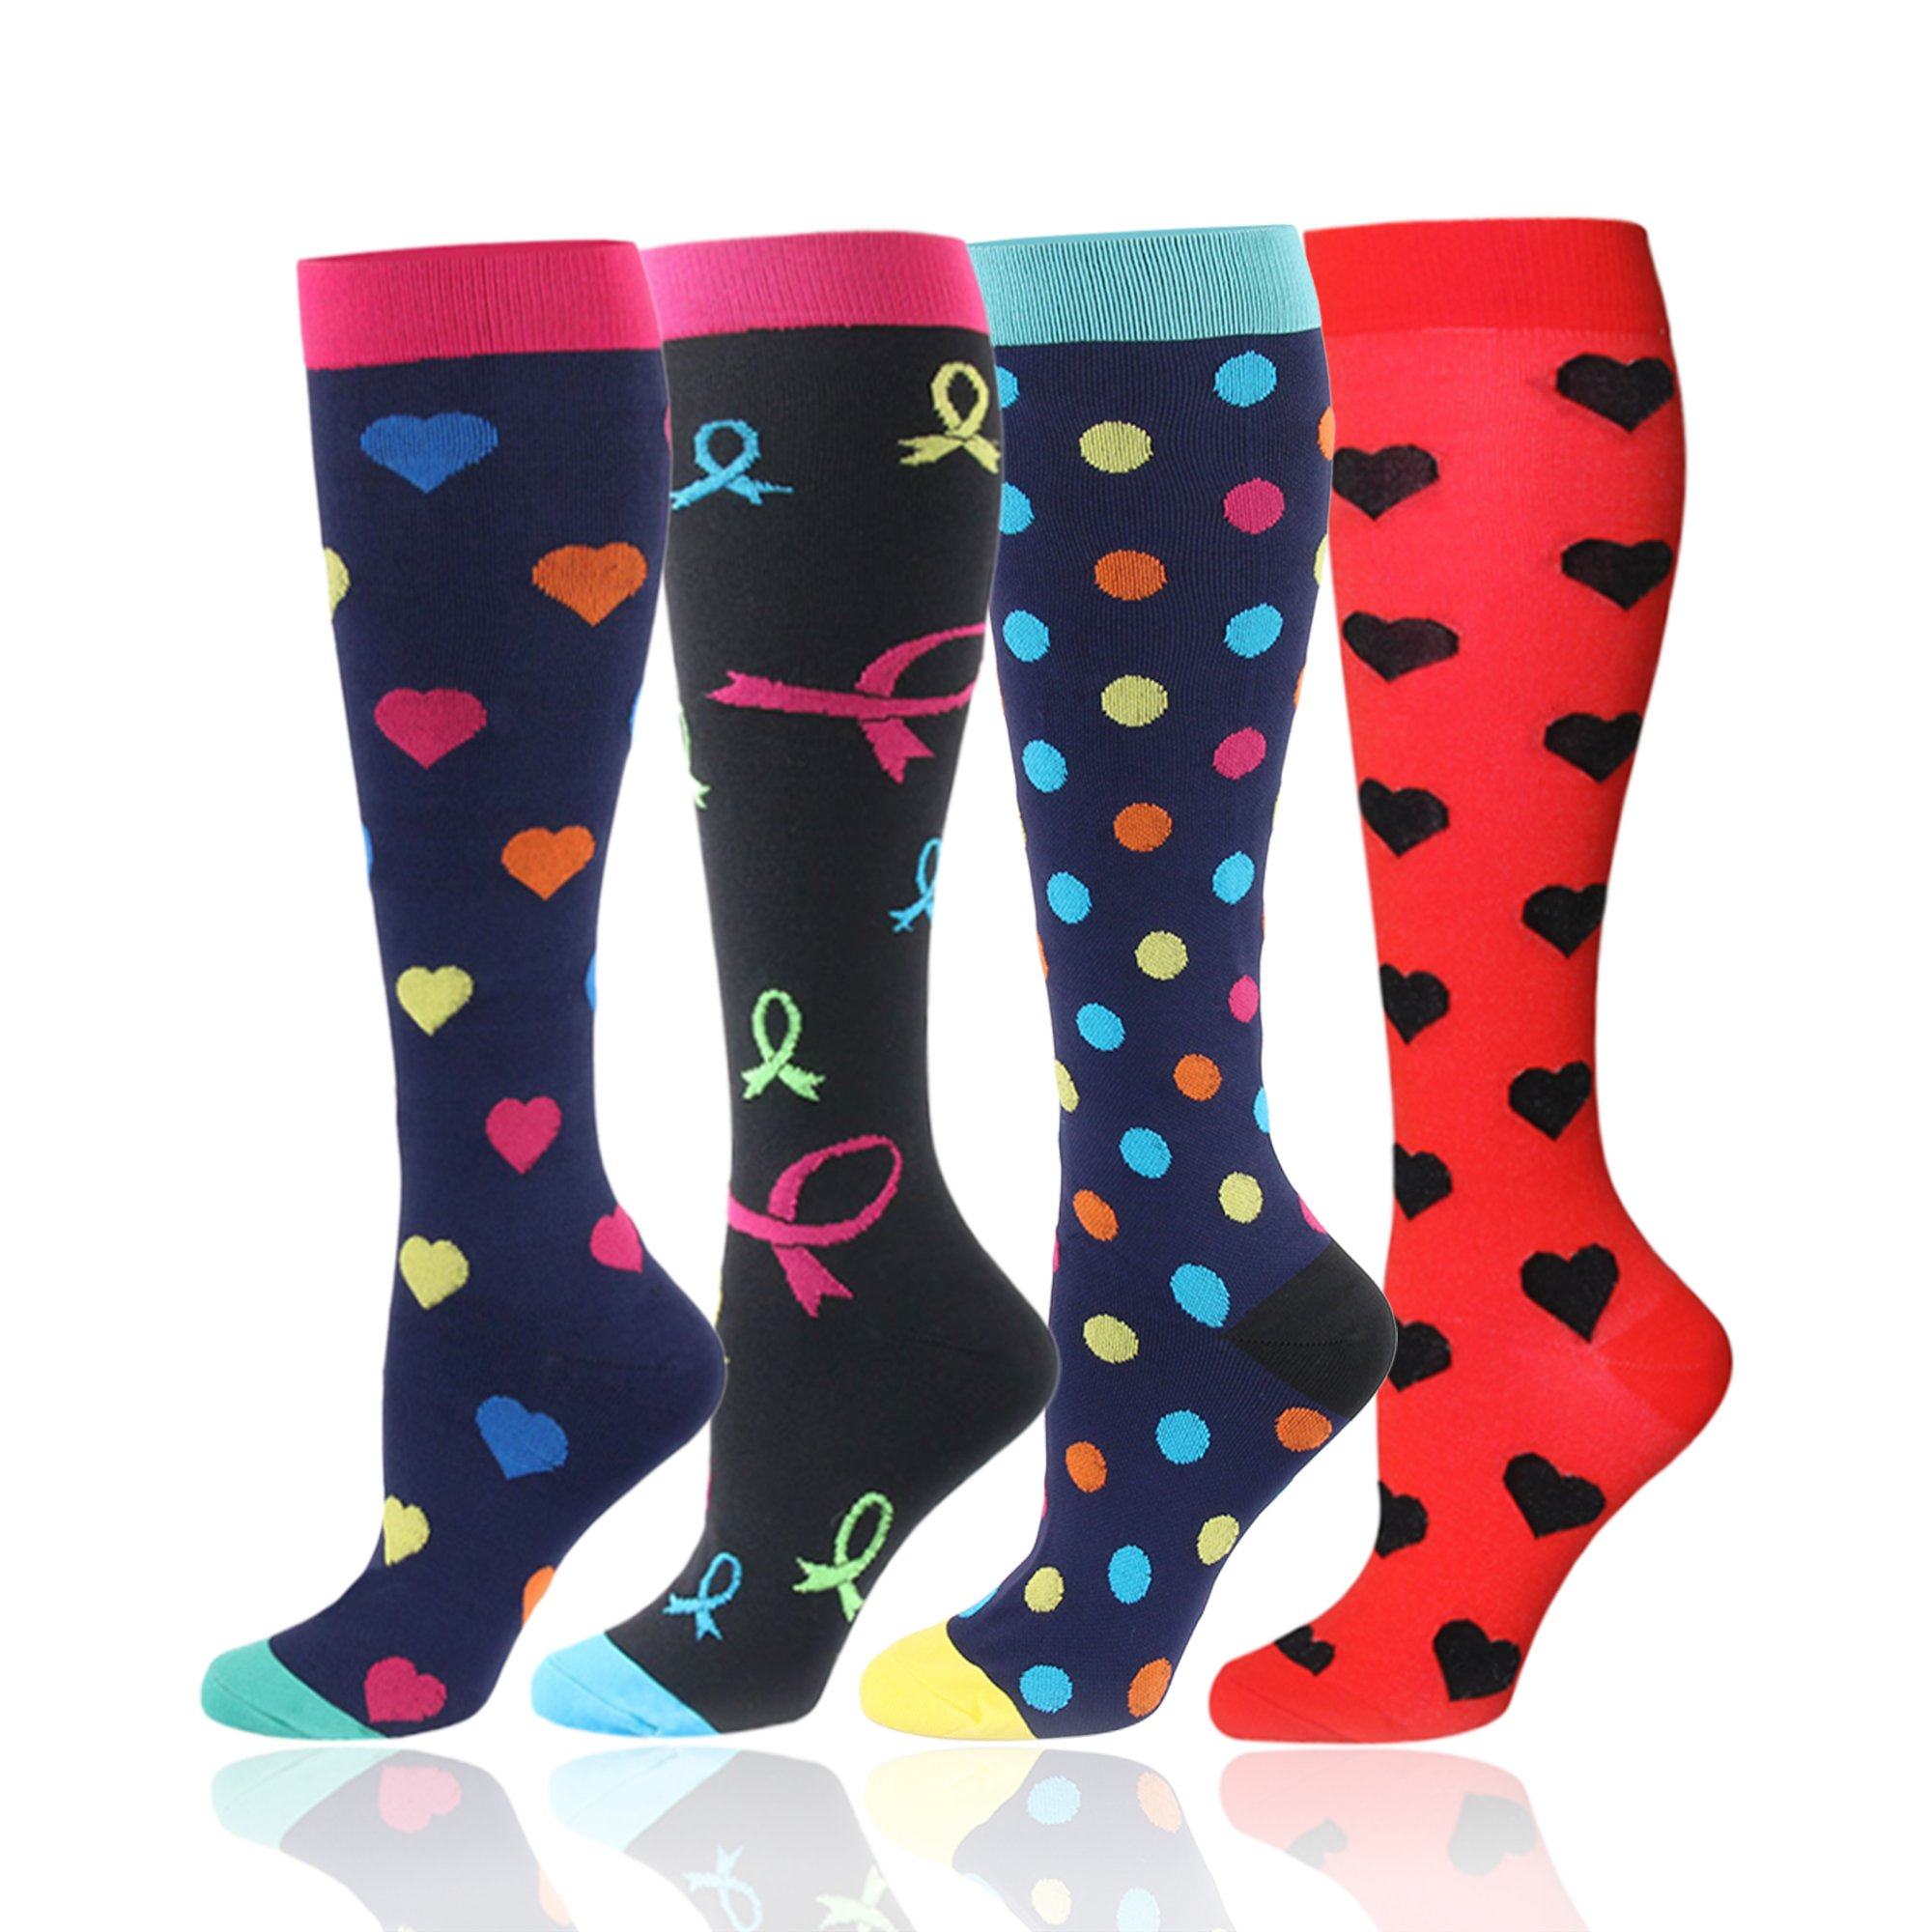 Compression Socks for Men and Women - Best for Running, Athletic, Nurse, Travel